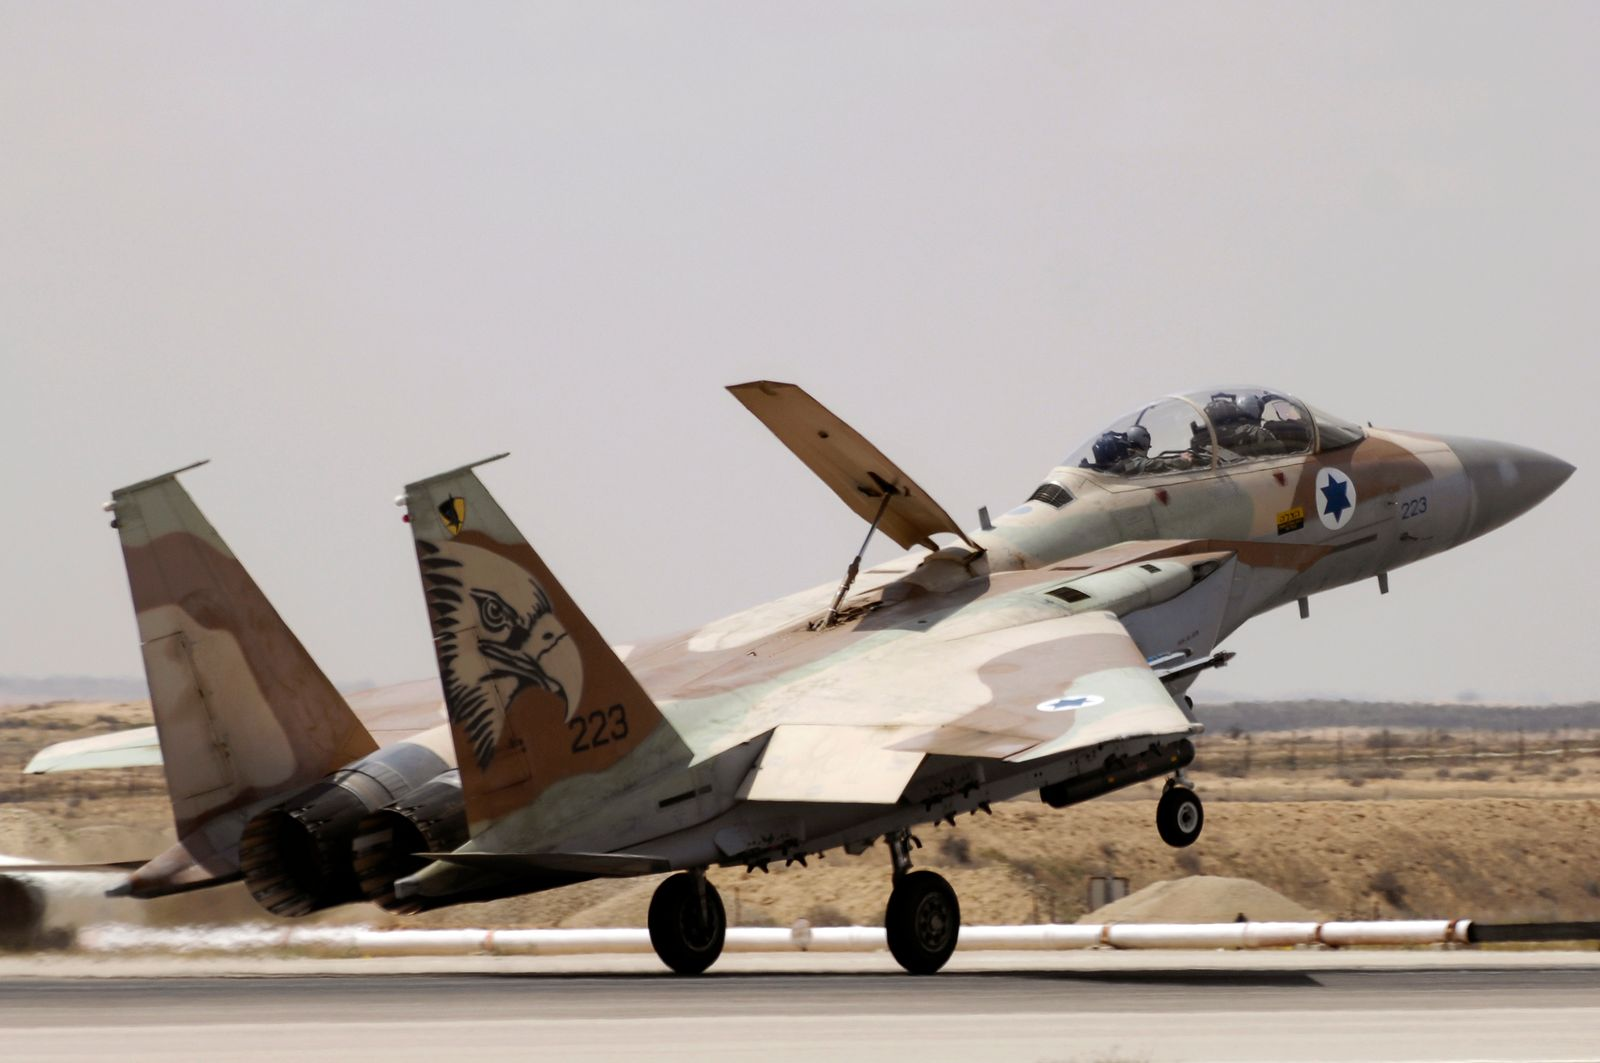 Israel air force F-15C fighter aircraft